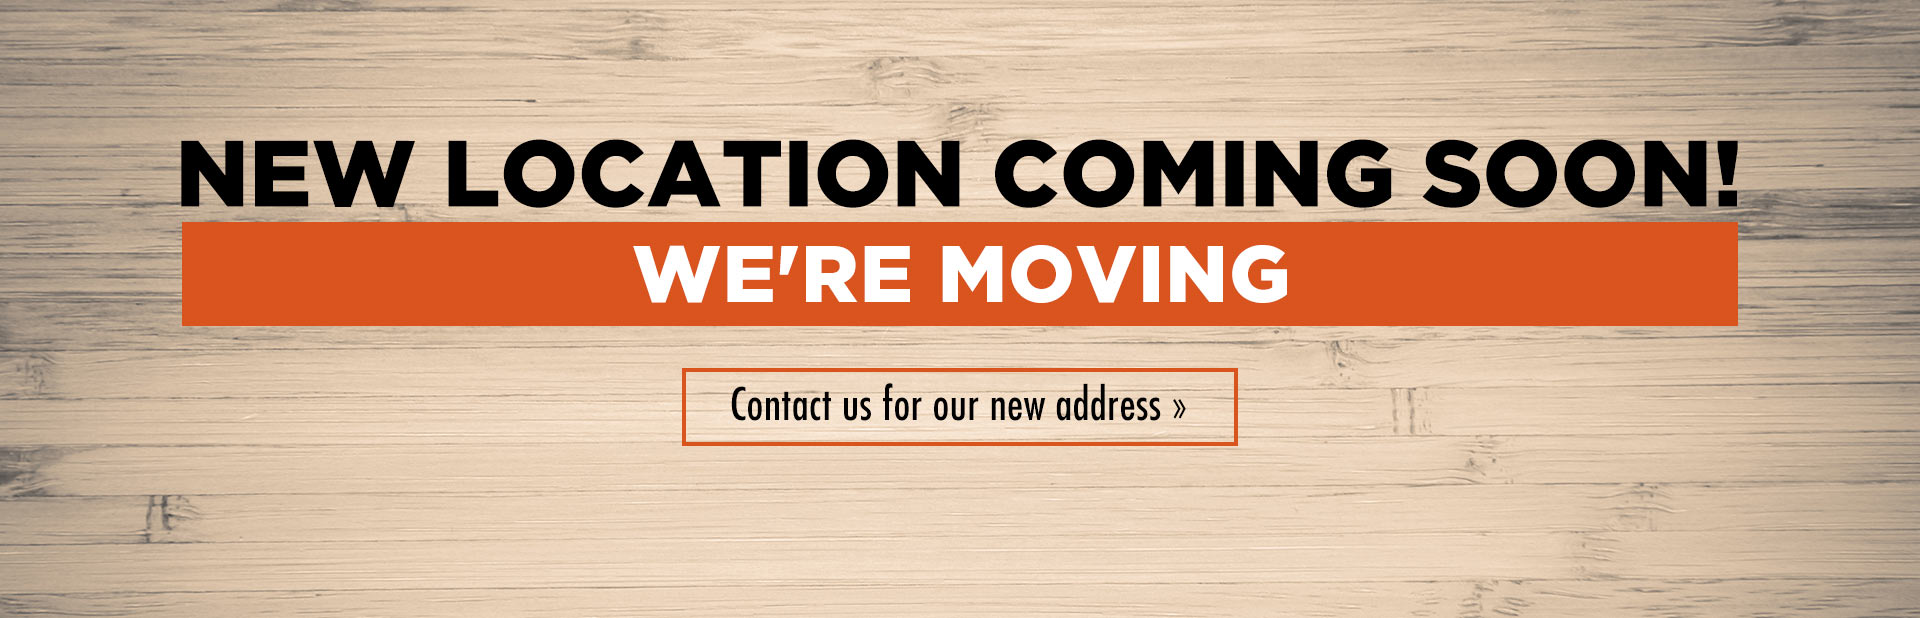 New Location Coming Soon: Contact us for our new address.